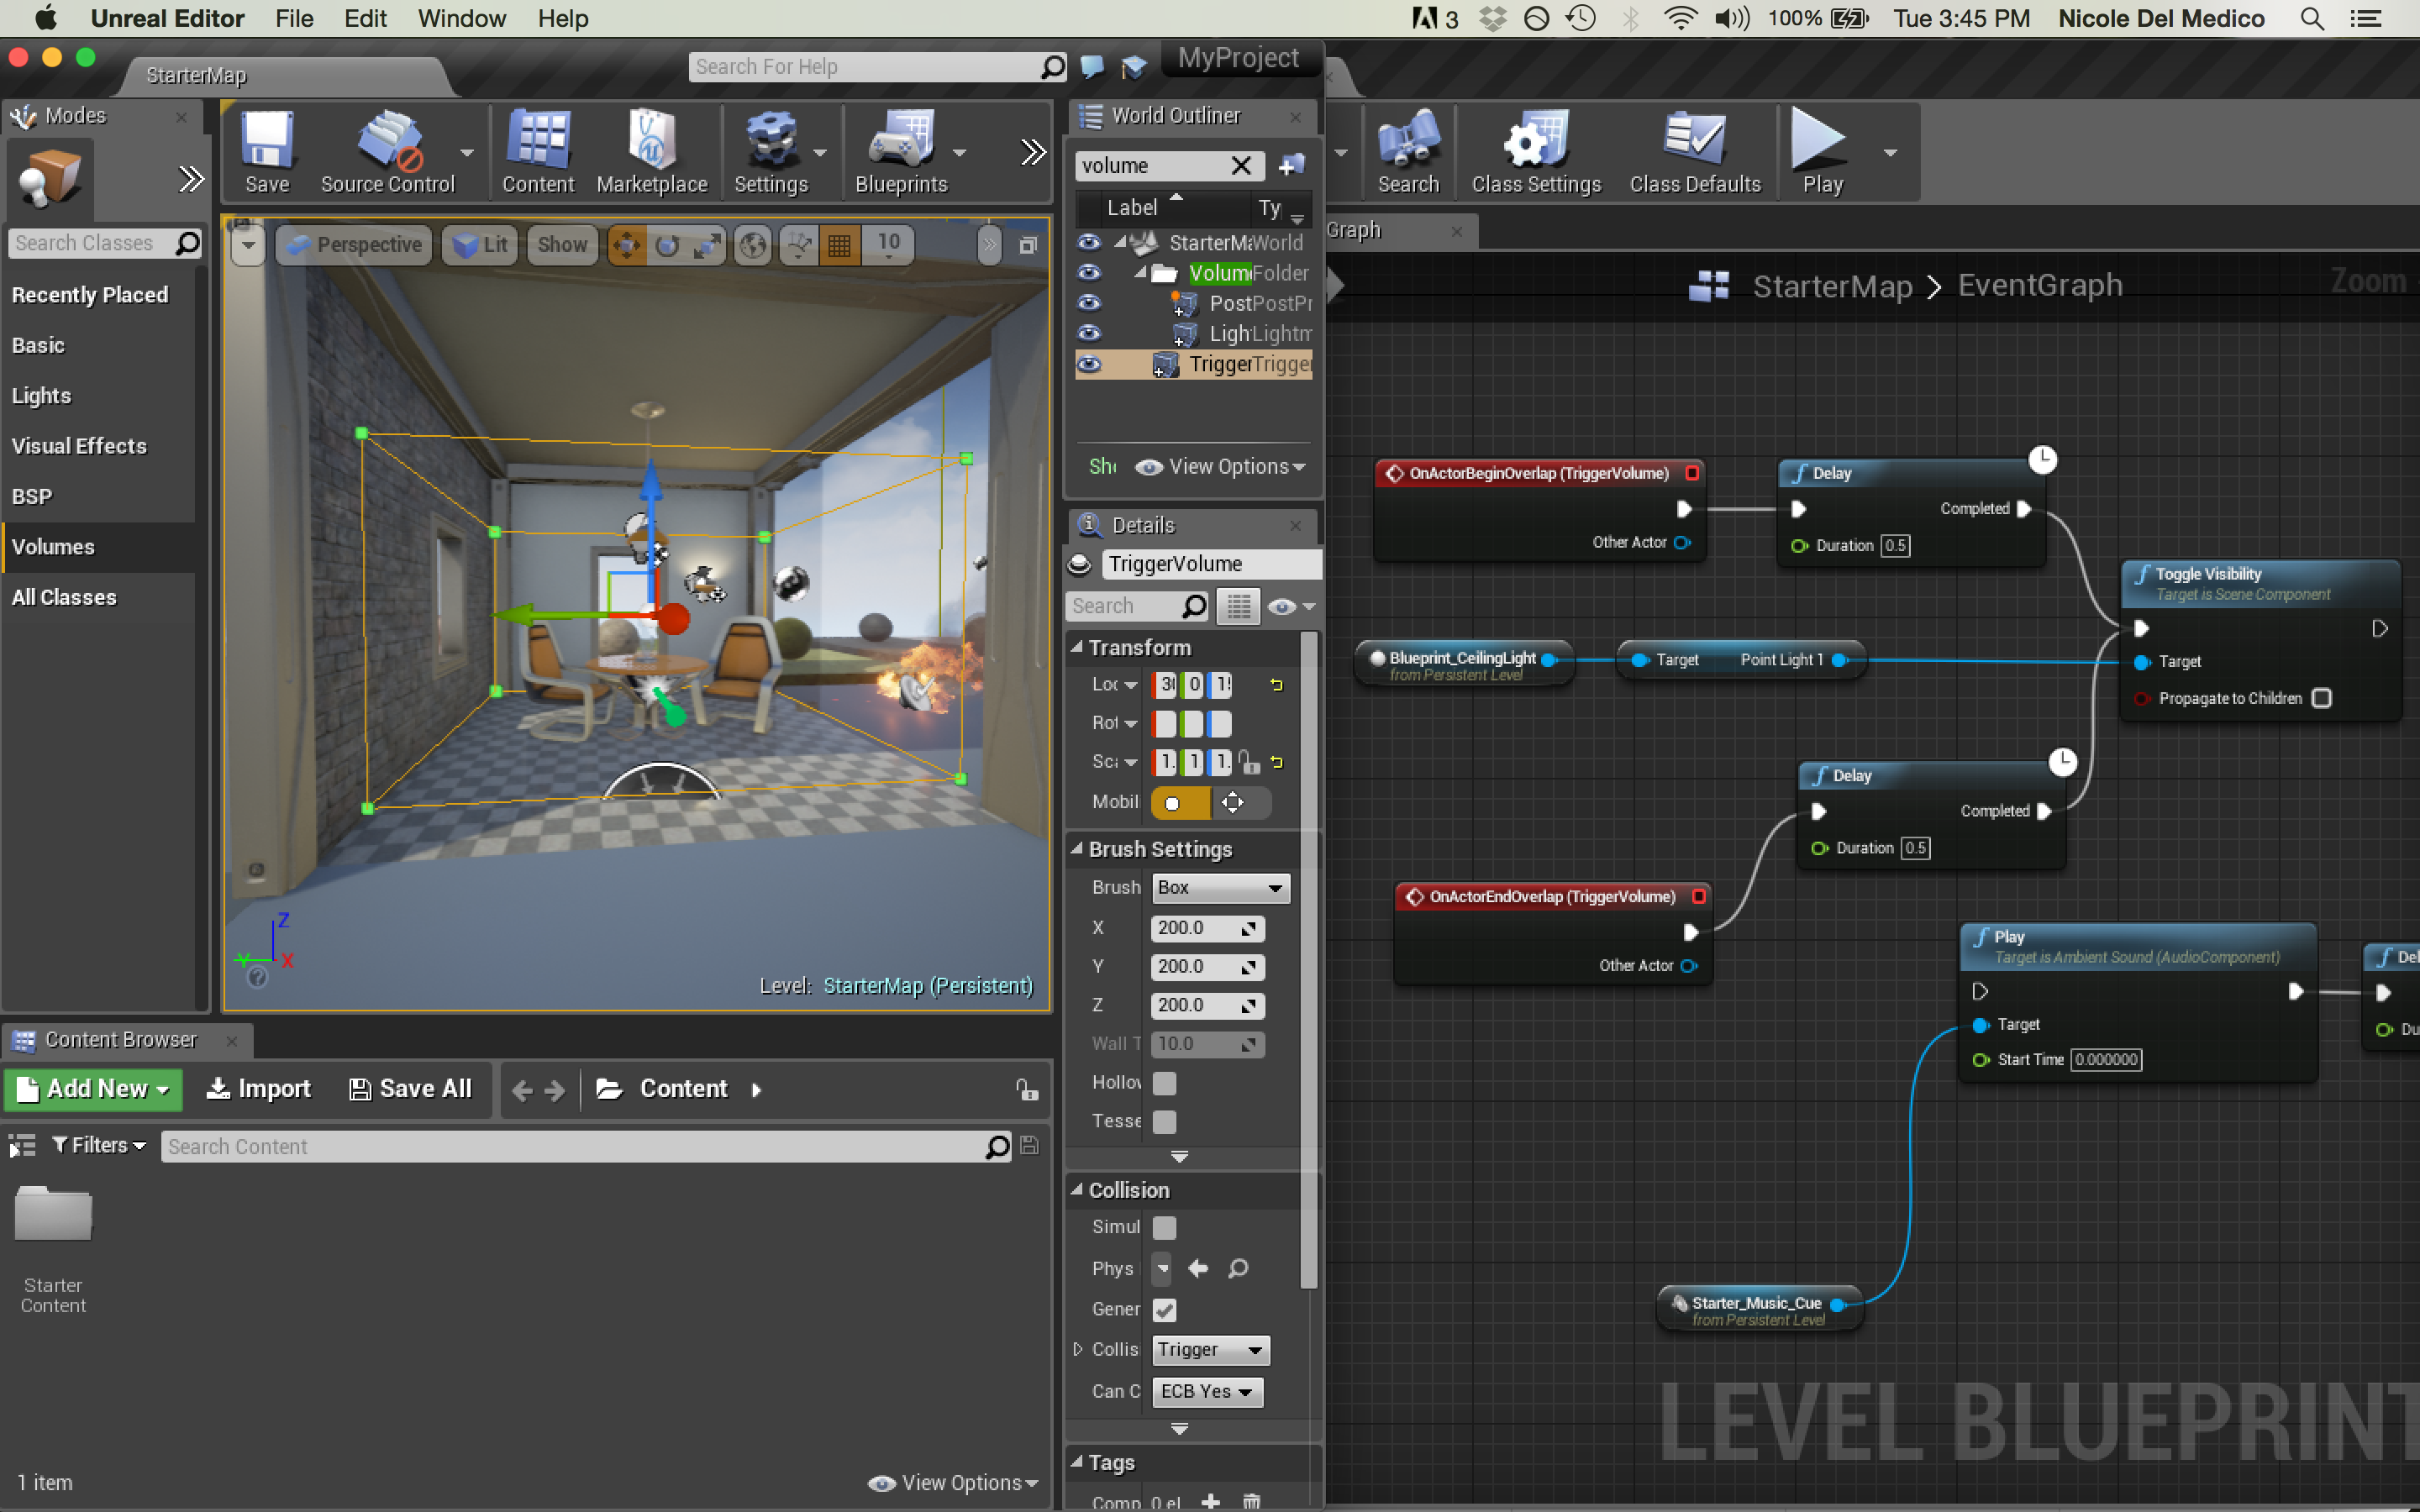 Ue4 blueprint tutorials level blueprints nicole del medicos screen shot 2015 10 06 at 34515 pm malvernweather Choice Image